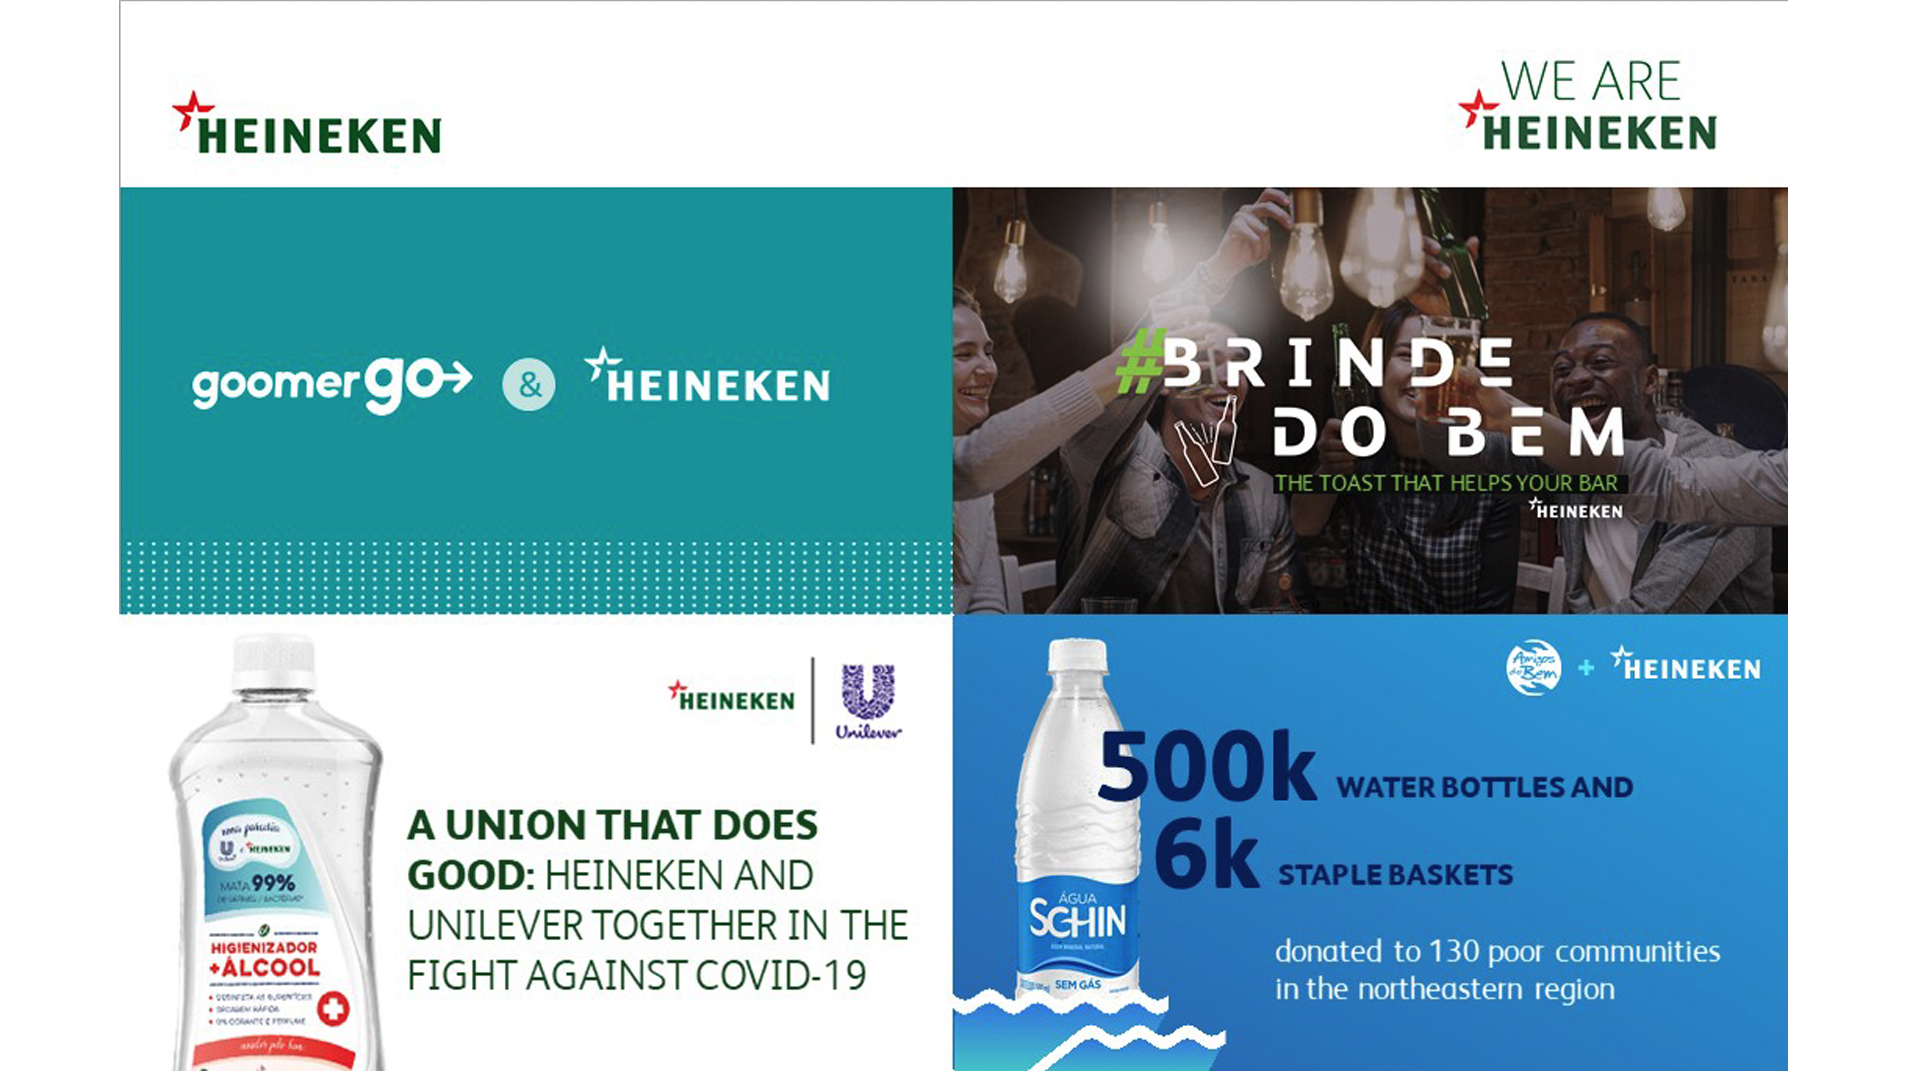 Our Response To Covid 19 The Heineken Company